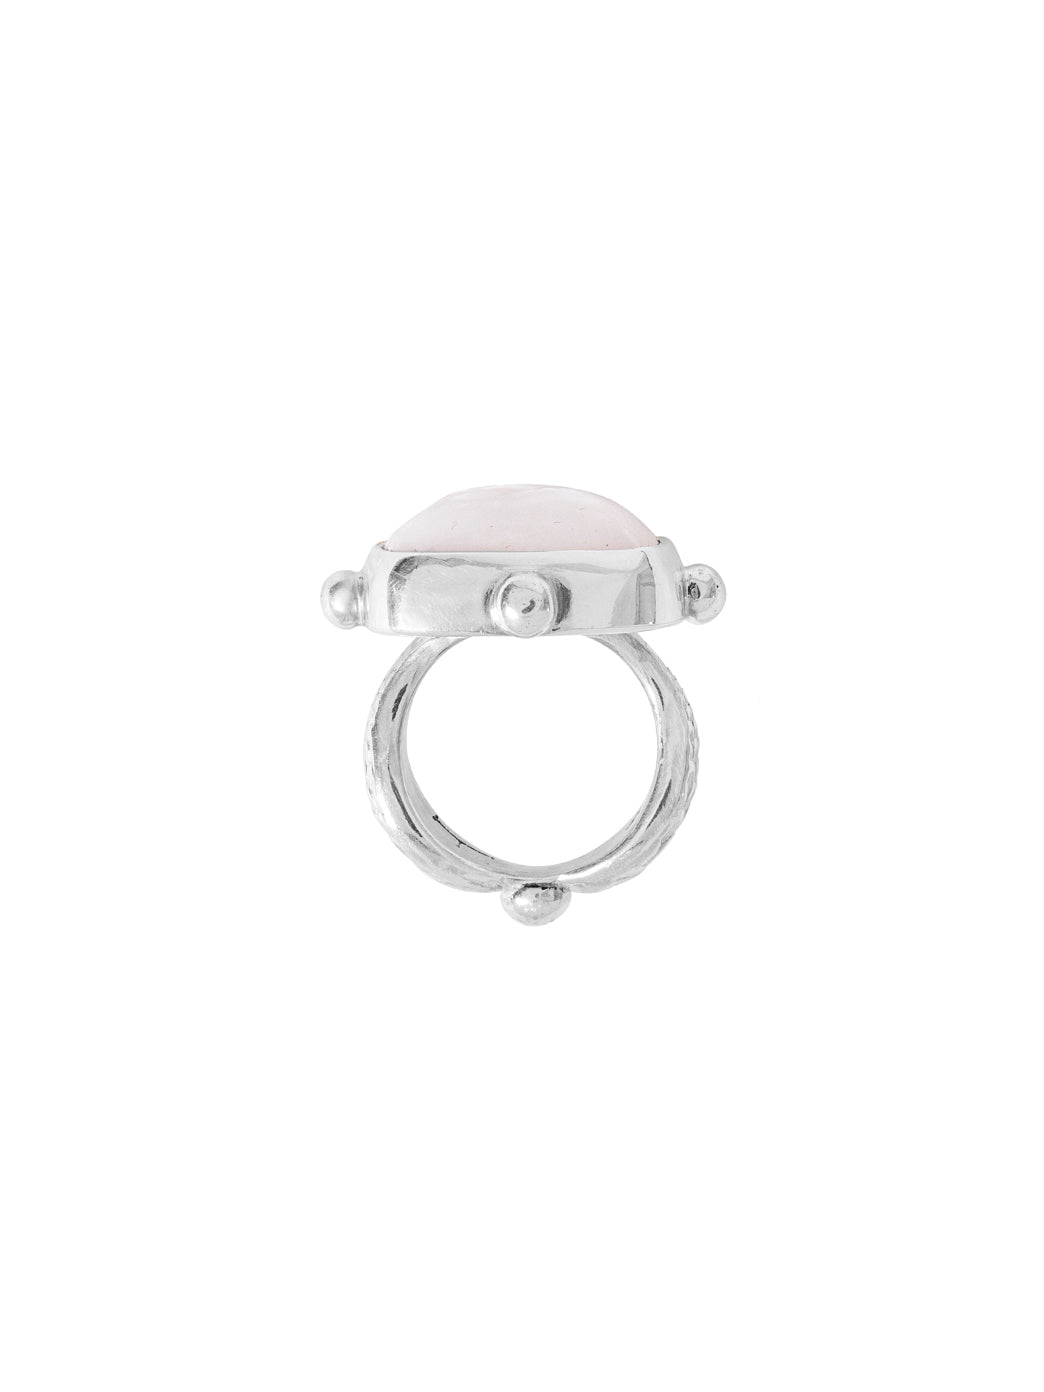 Fiorina Jewellery Cushion Cut Fishband Ring Side View